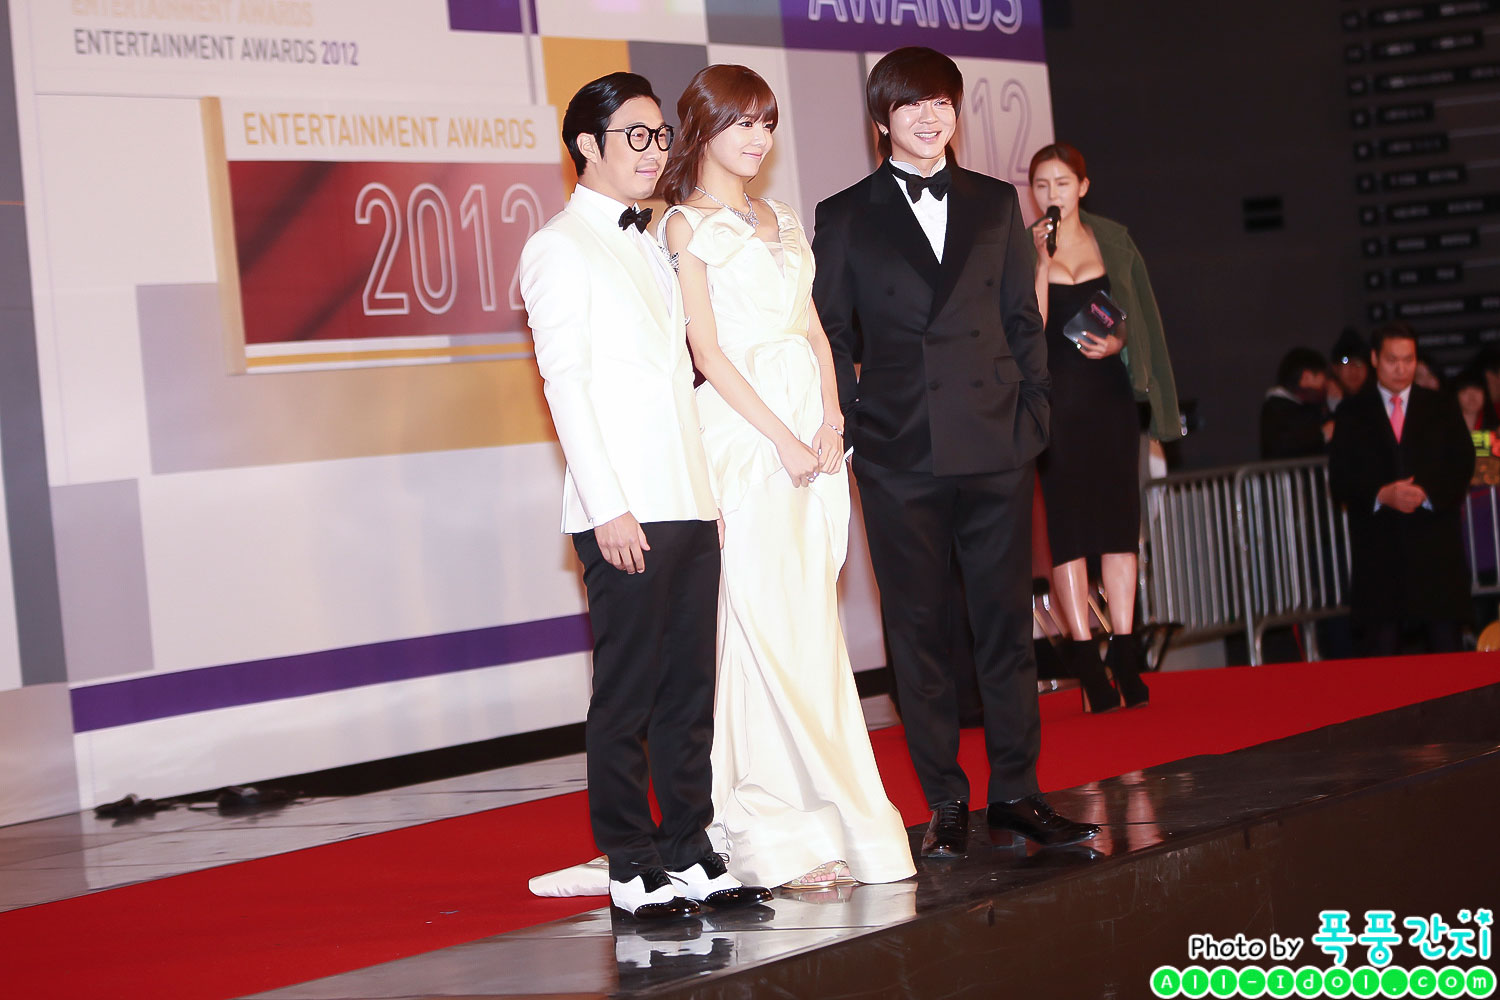 Sooyoung @ SBS Entertainment Awards 2012